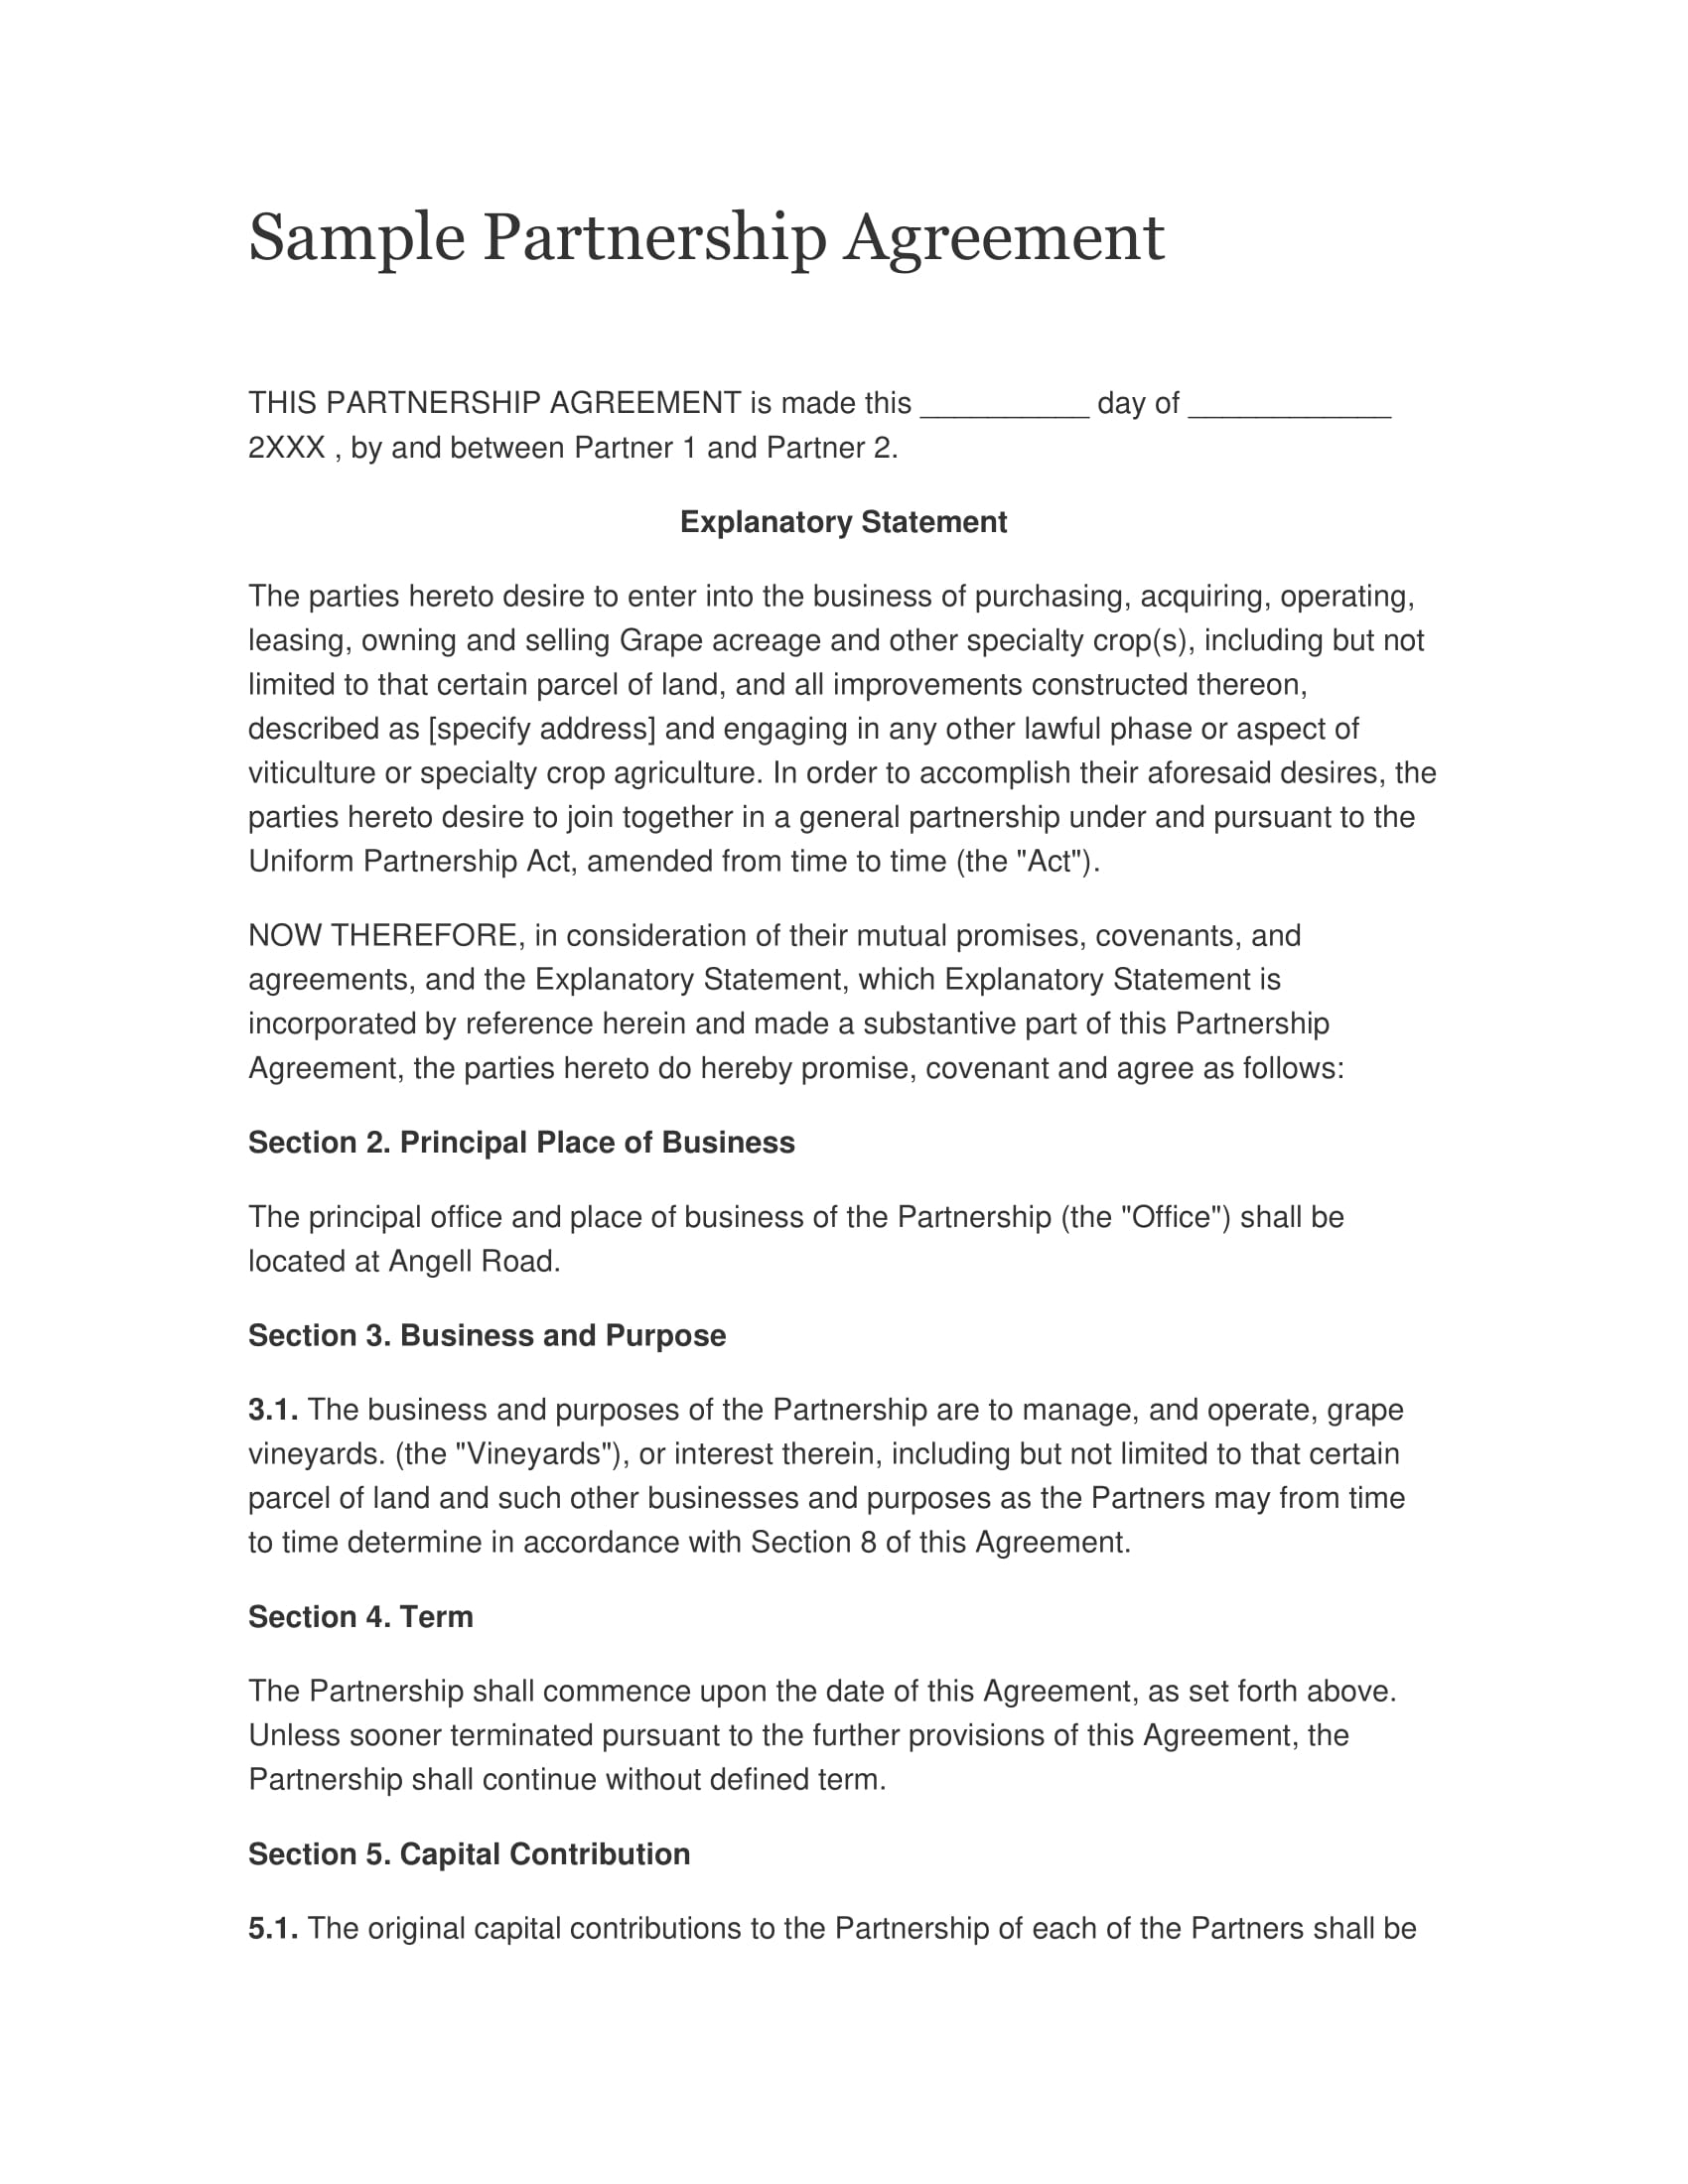 basic partnership agreement example1